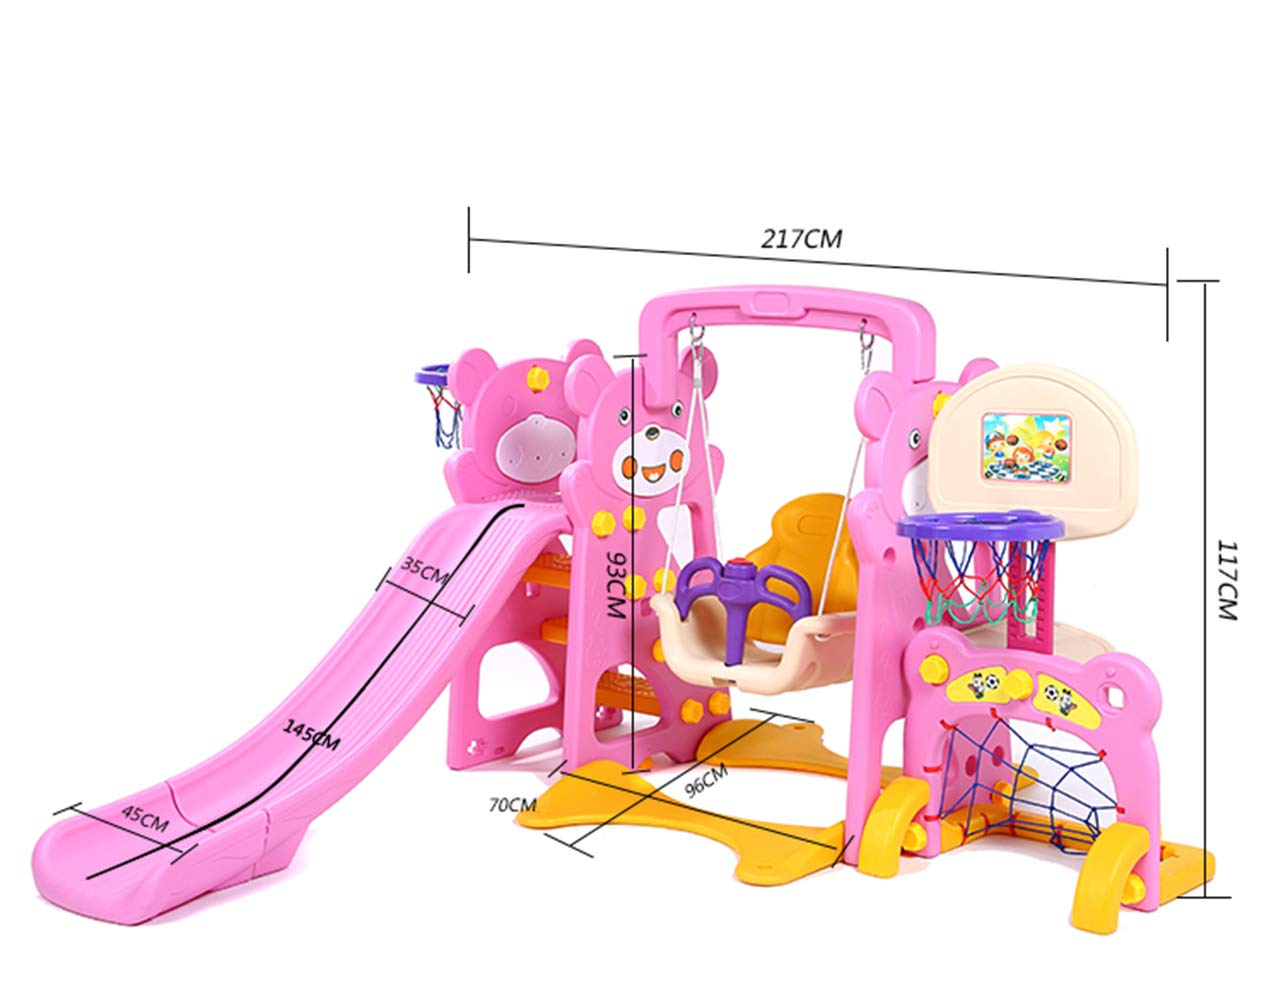 5-in-1 Toddler Climber and Swing Set with Ball Pool and air Pump Basketball Hoop Playset for Both Indoors Backyard,Green by Thole (Image #2)